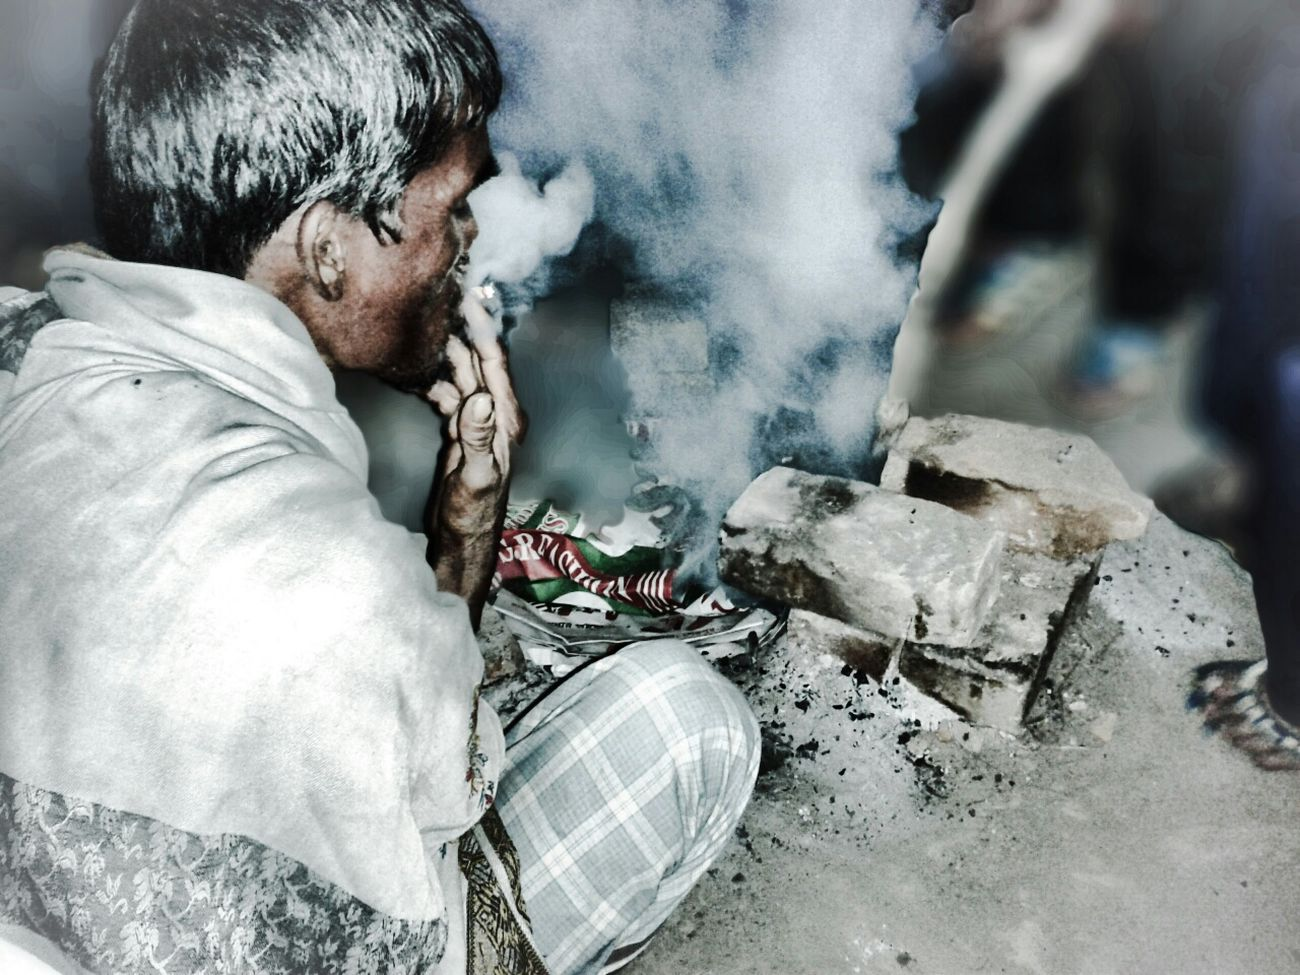 RePicture Ageing Asian Culture Bangladesh Village Life Oldies STRUGGLE LIFE Typical village hard working oldies who smoke & burn woods to warm themselves at the ebd of thr day this is the story of amazing life of Bangladesh